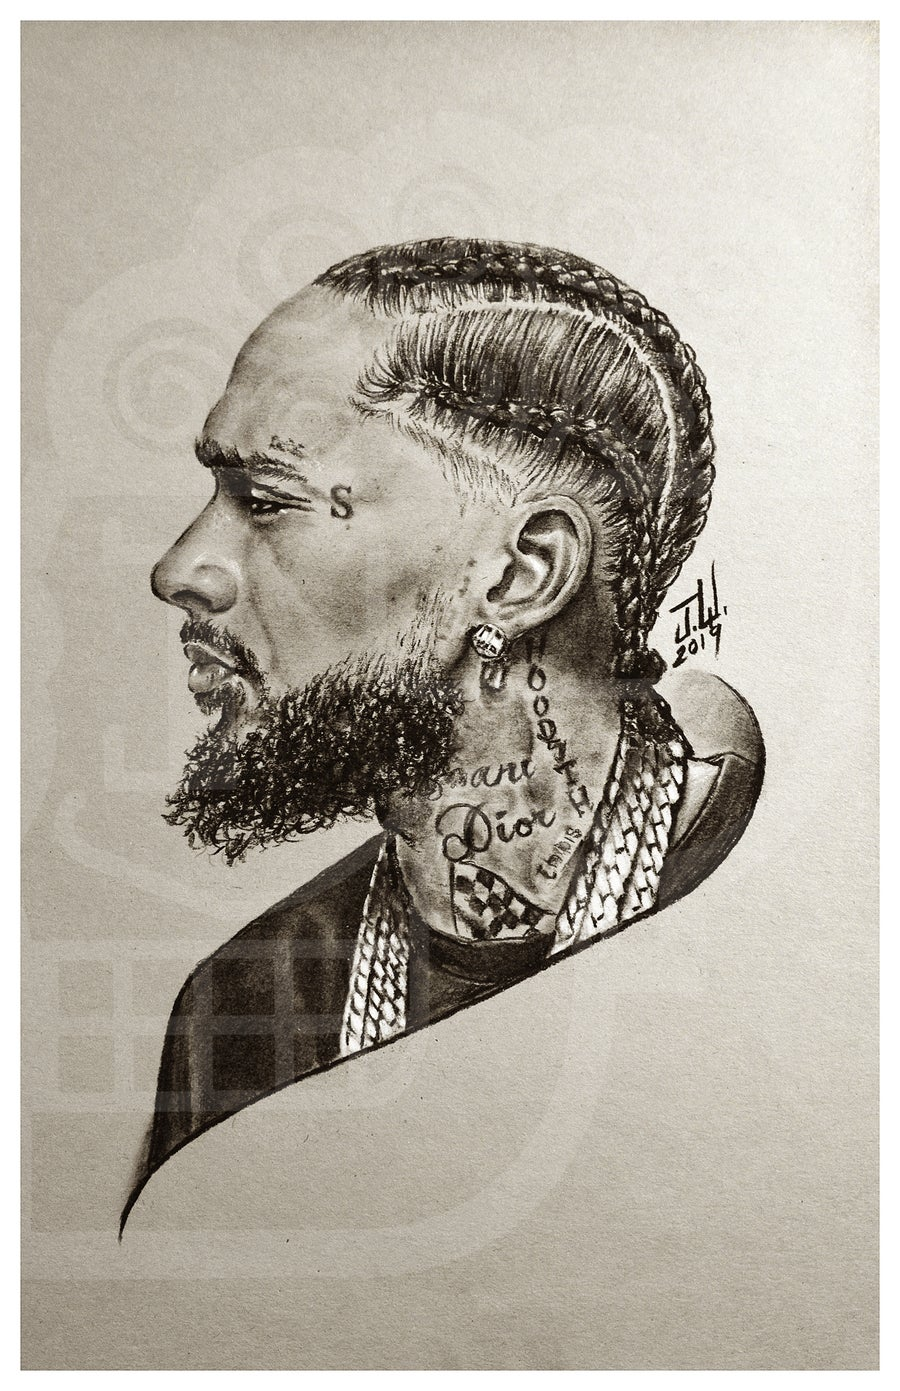 Image of Nipsey Hussle Ermias Asghedom rip art artwork legend hiphop rapper the marathon continues dedication